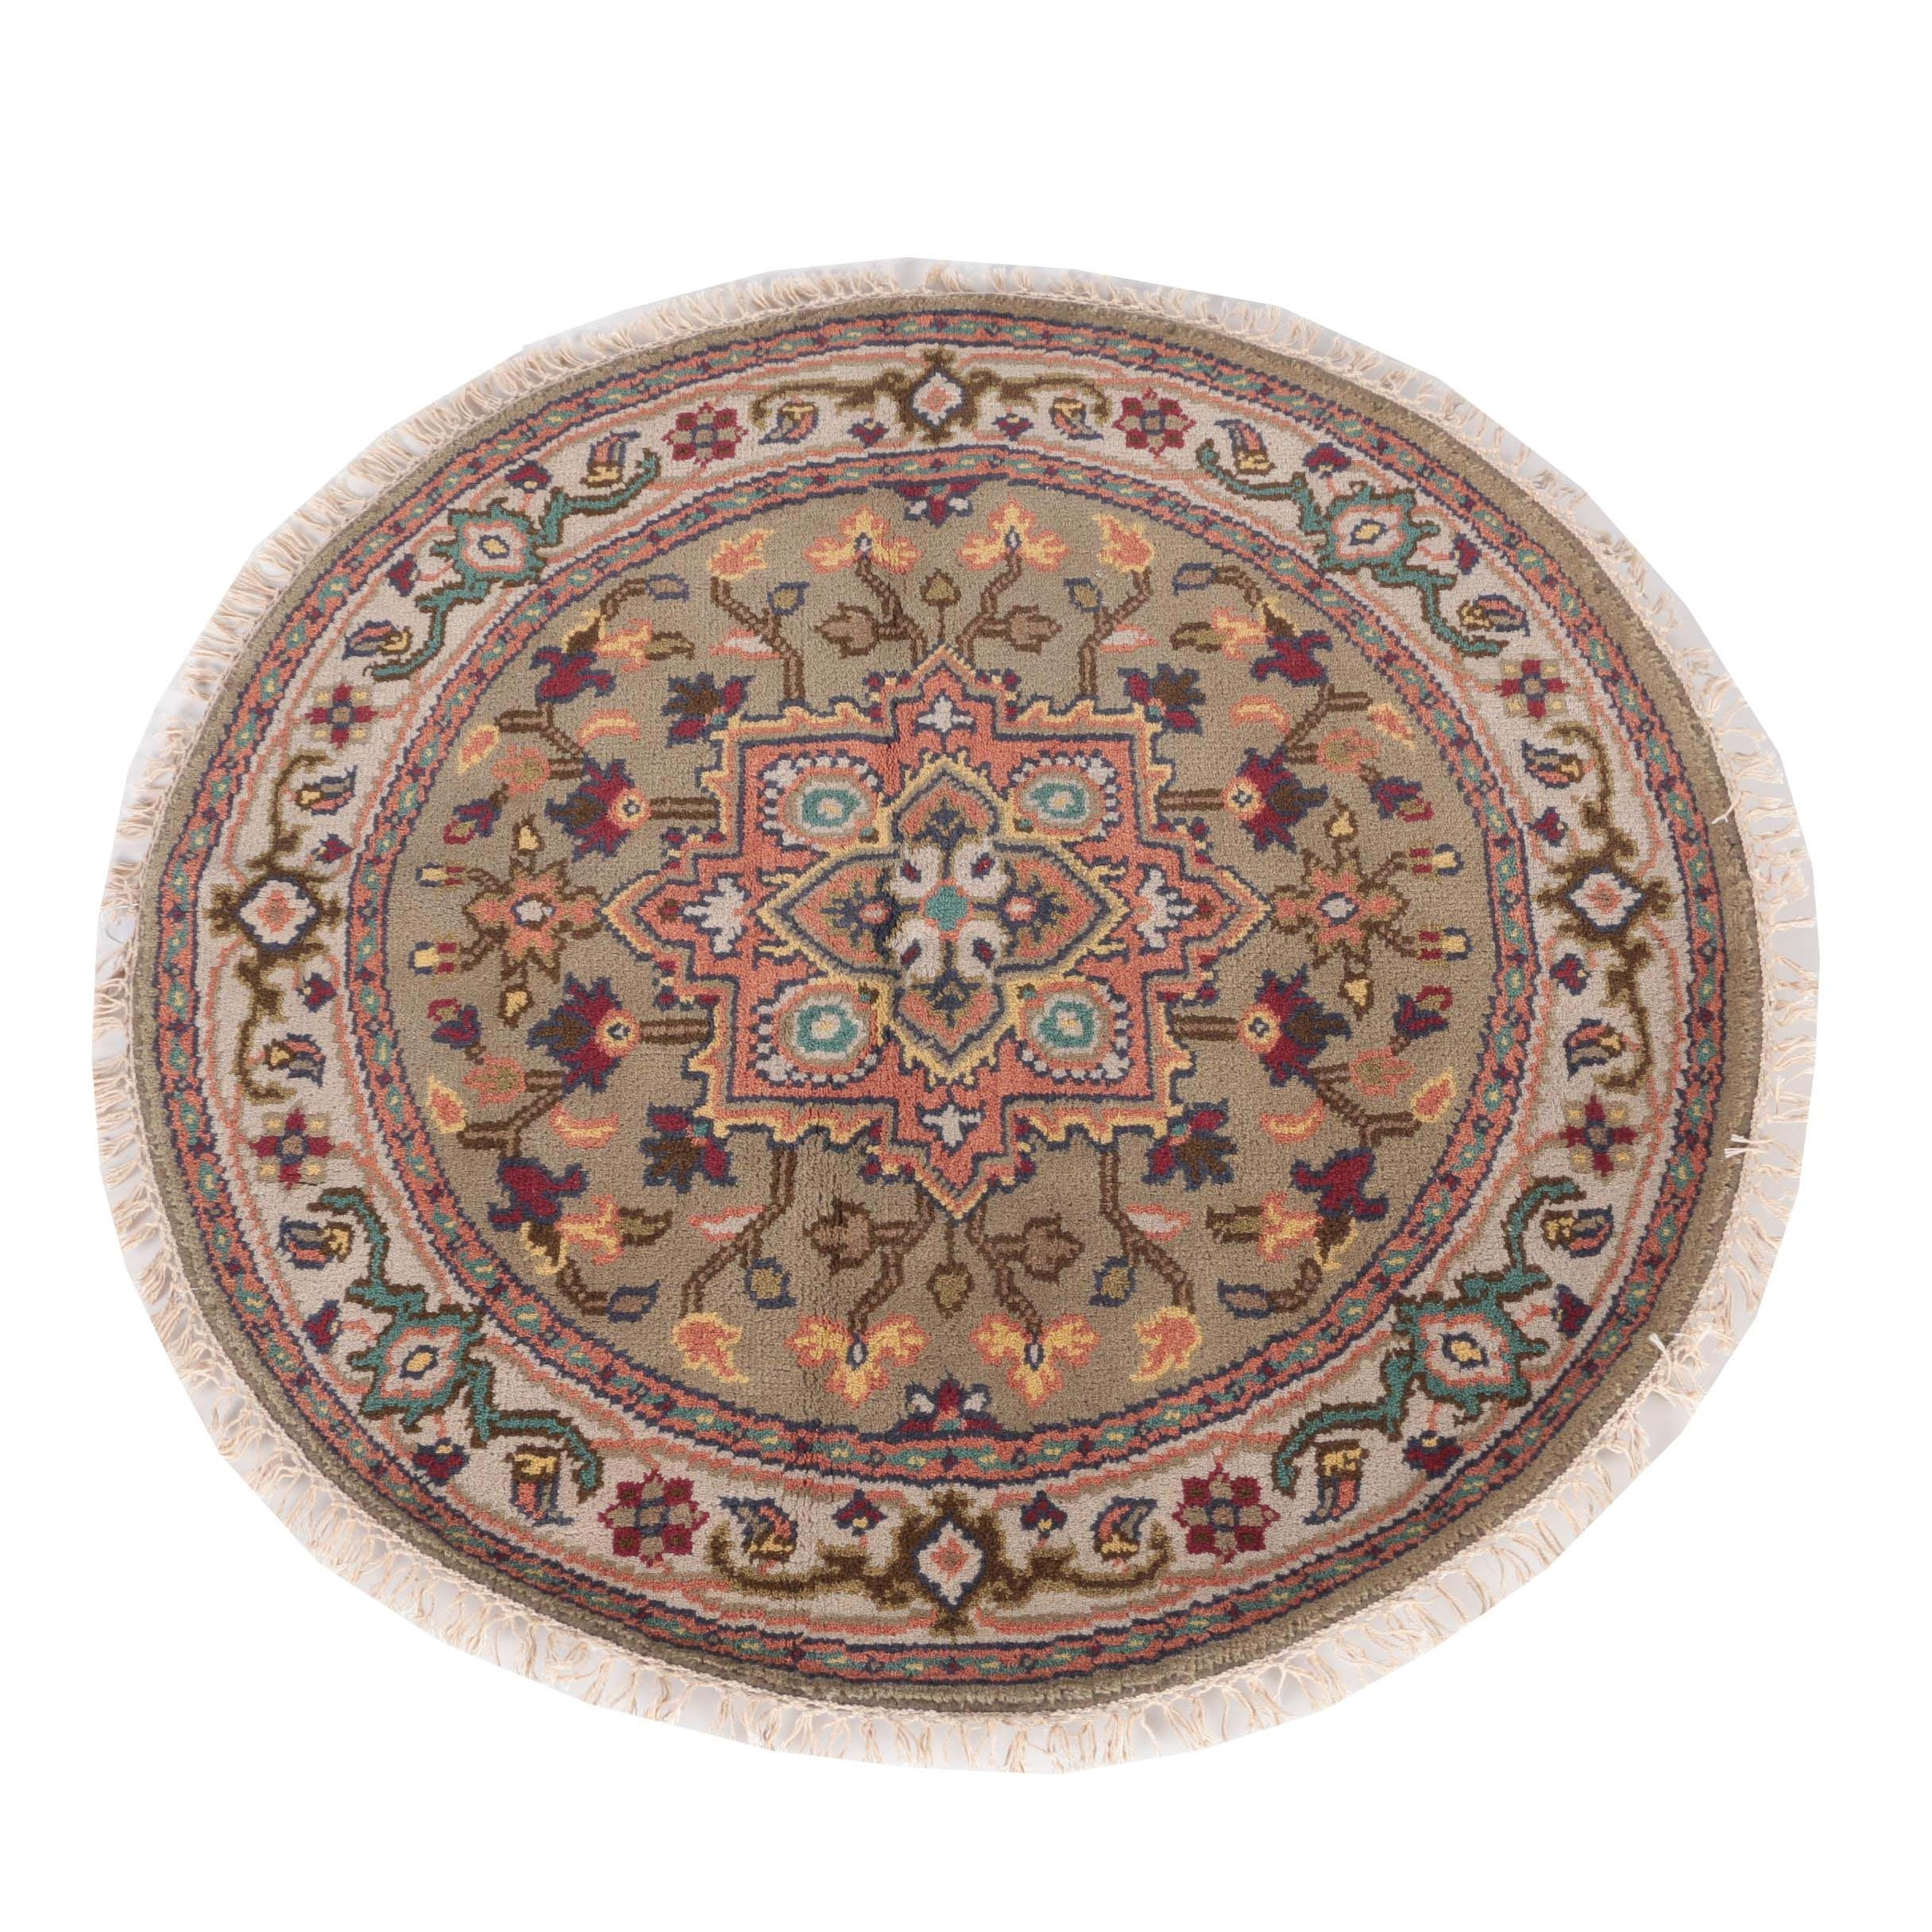 Hand-Knotted Persian Round Accent Rug